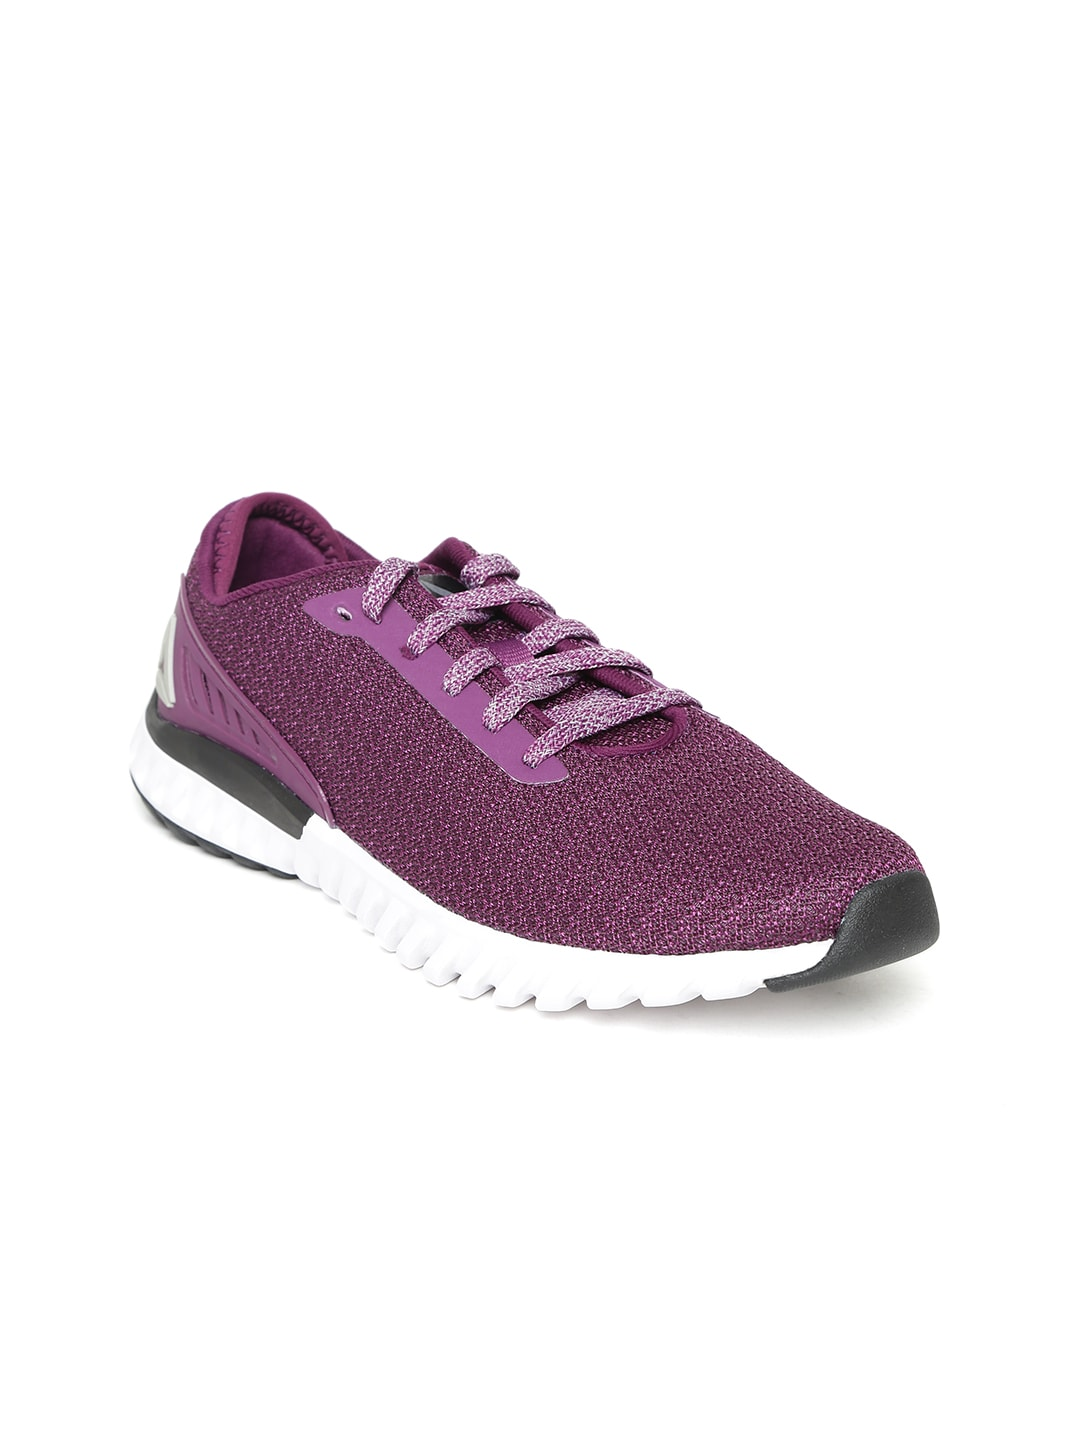 3 Tops Sports Shoes - Buy   3 Tops Sports Shoes online in India bd9582a90